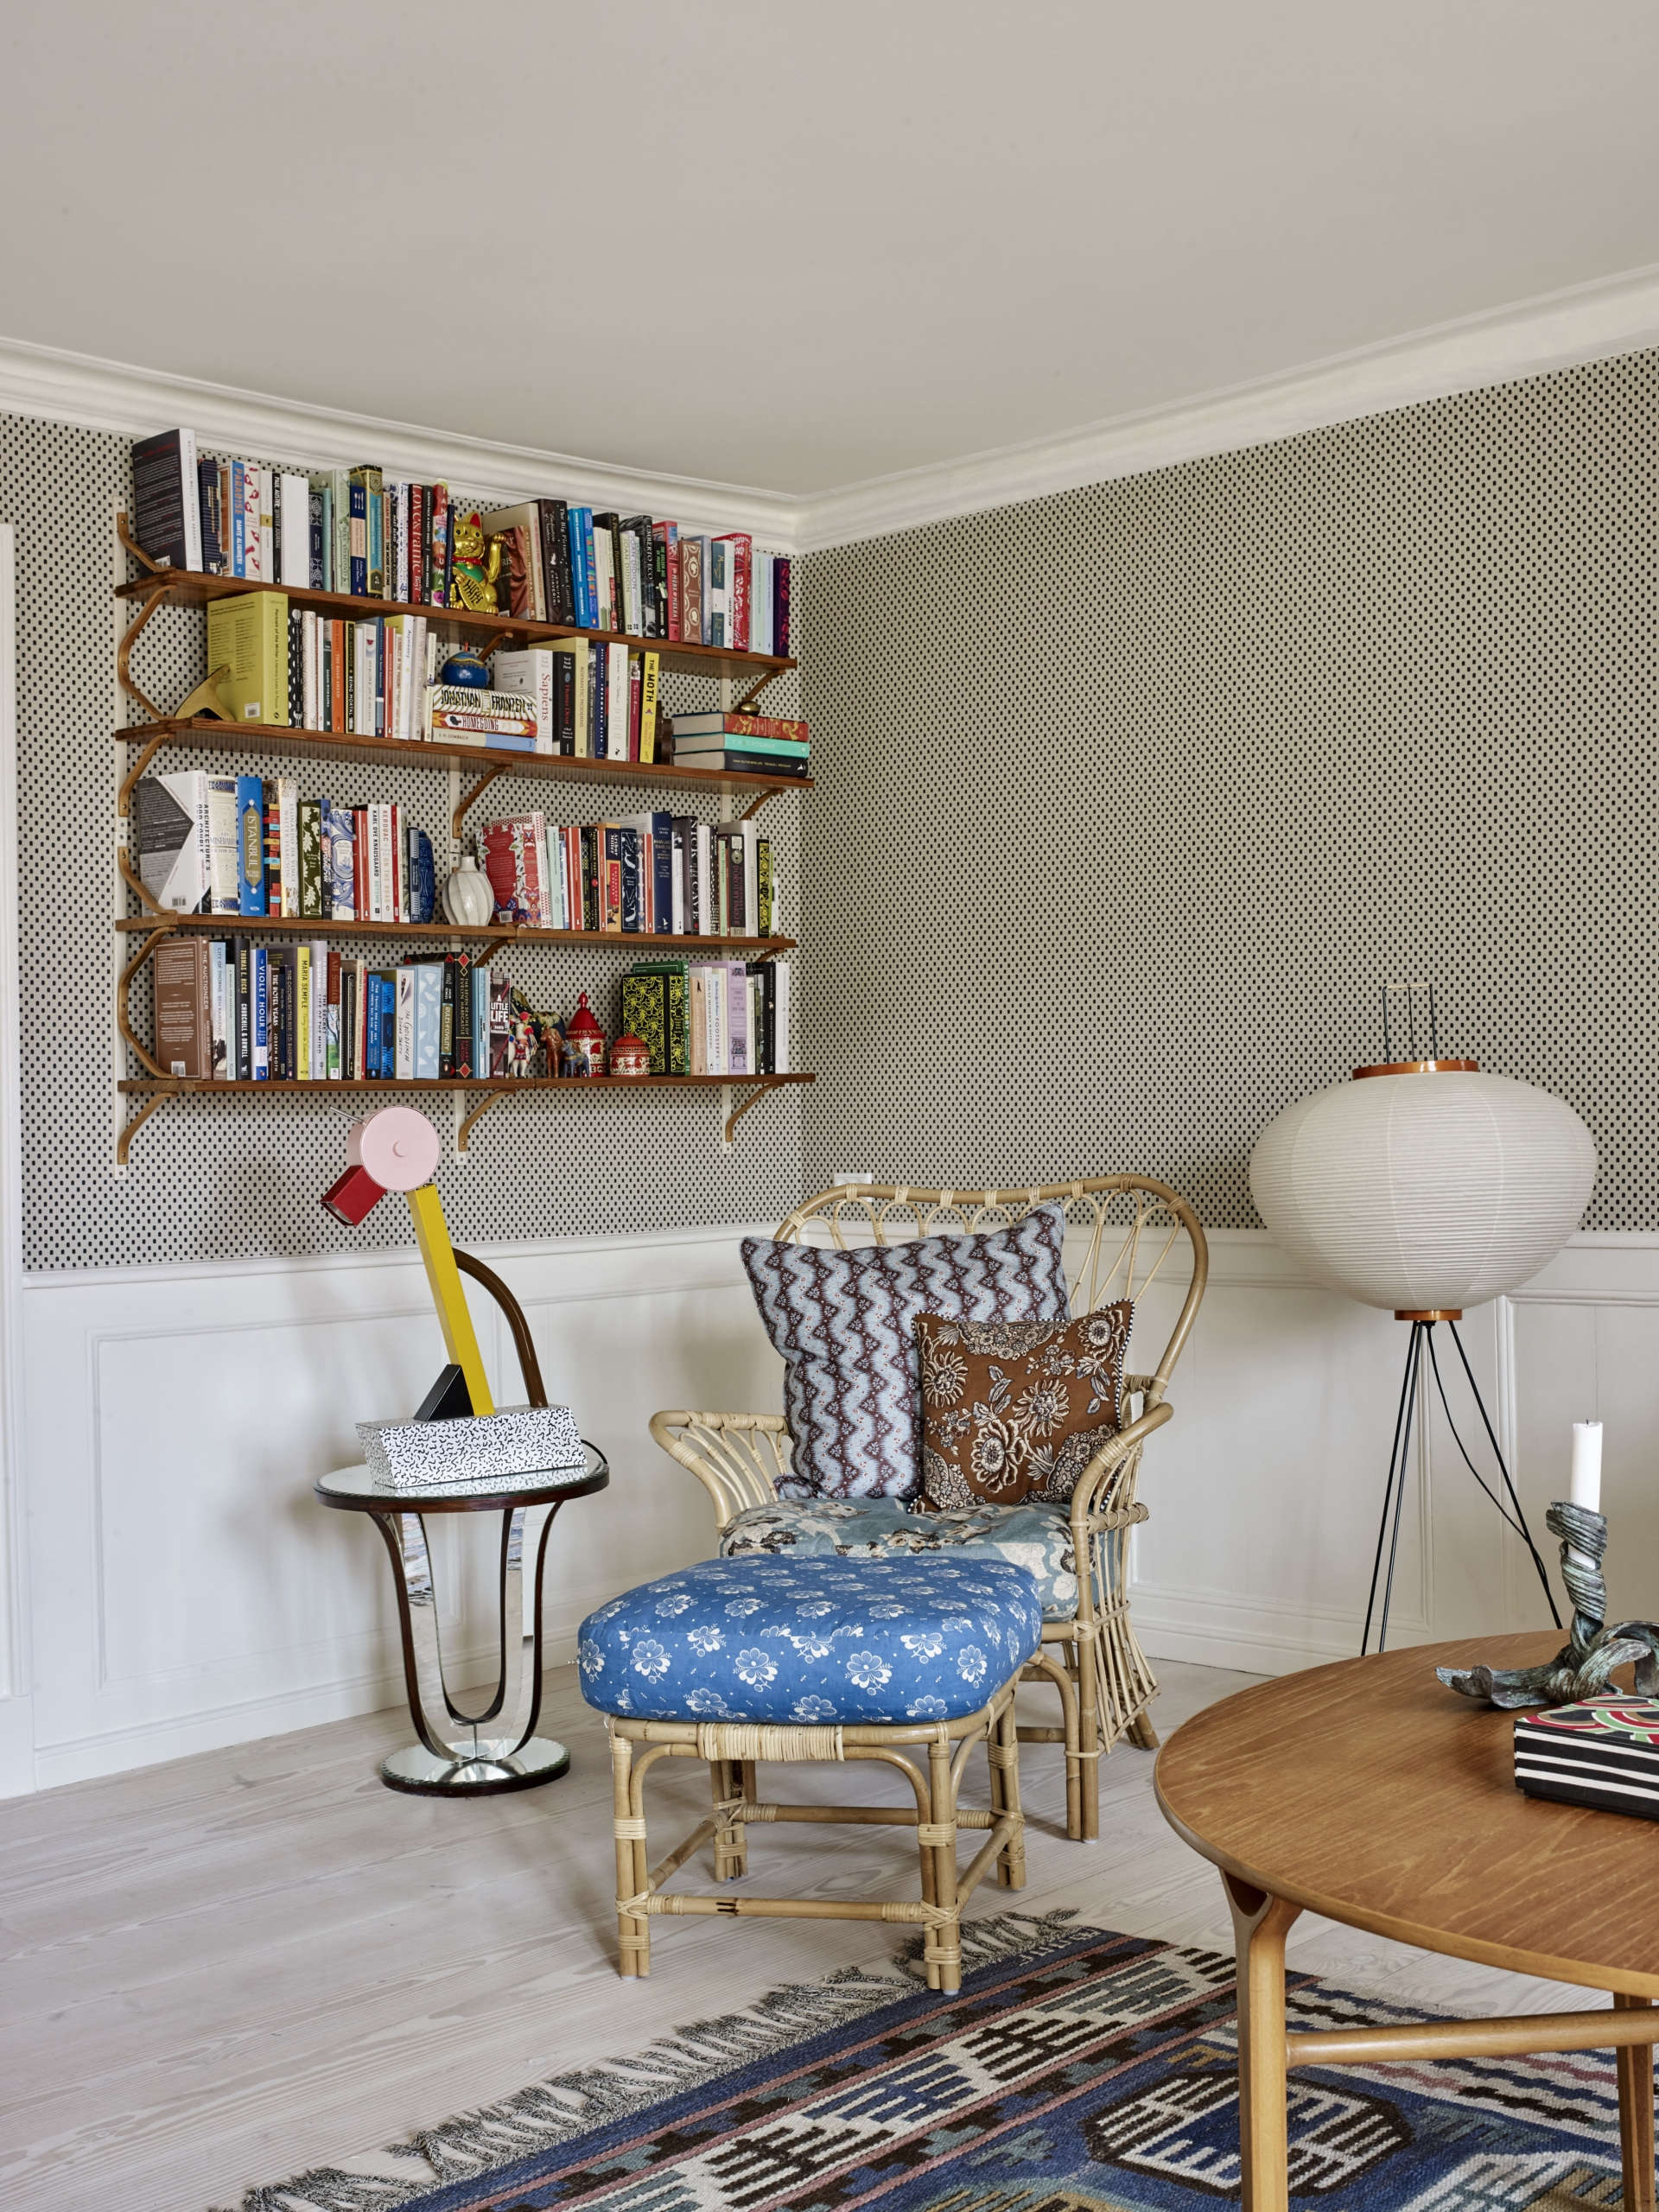 In the library corner of the room, Tina layered patterns on a rattan chair and paired it with Ettore Sottsass&#8